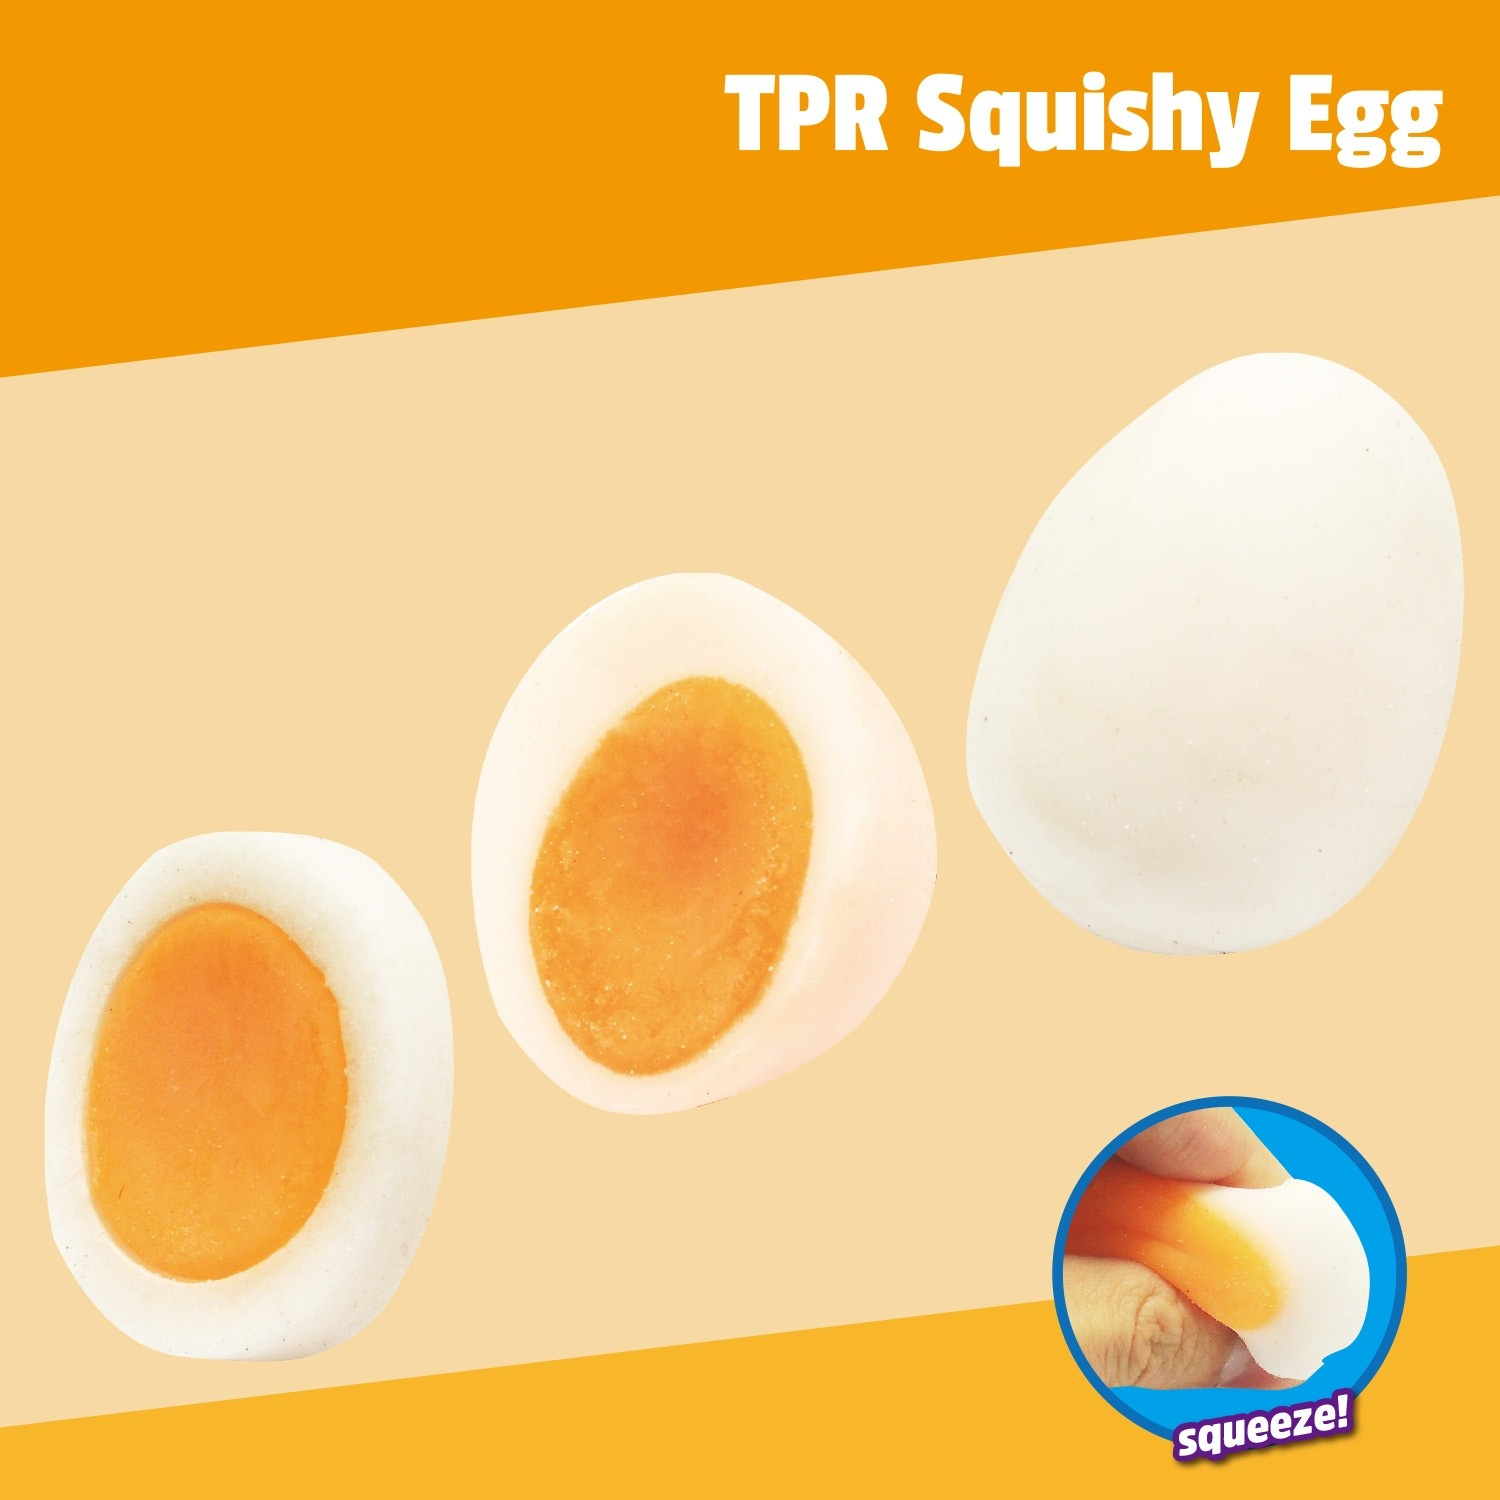 TPR Squishy Egg